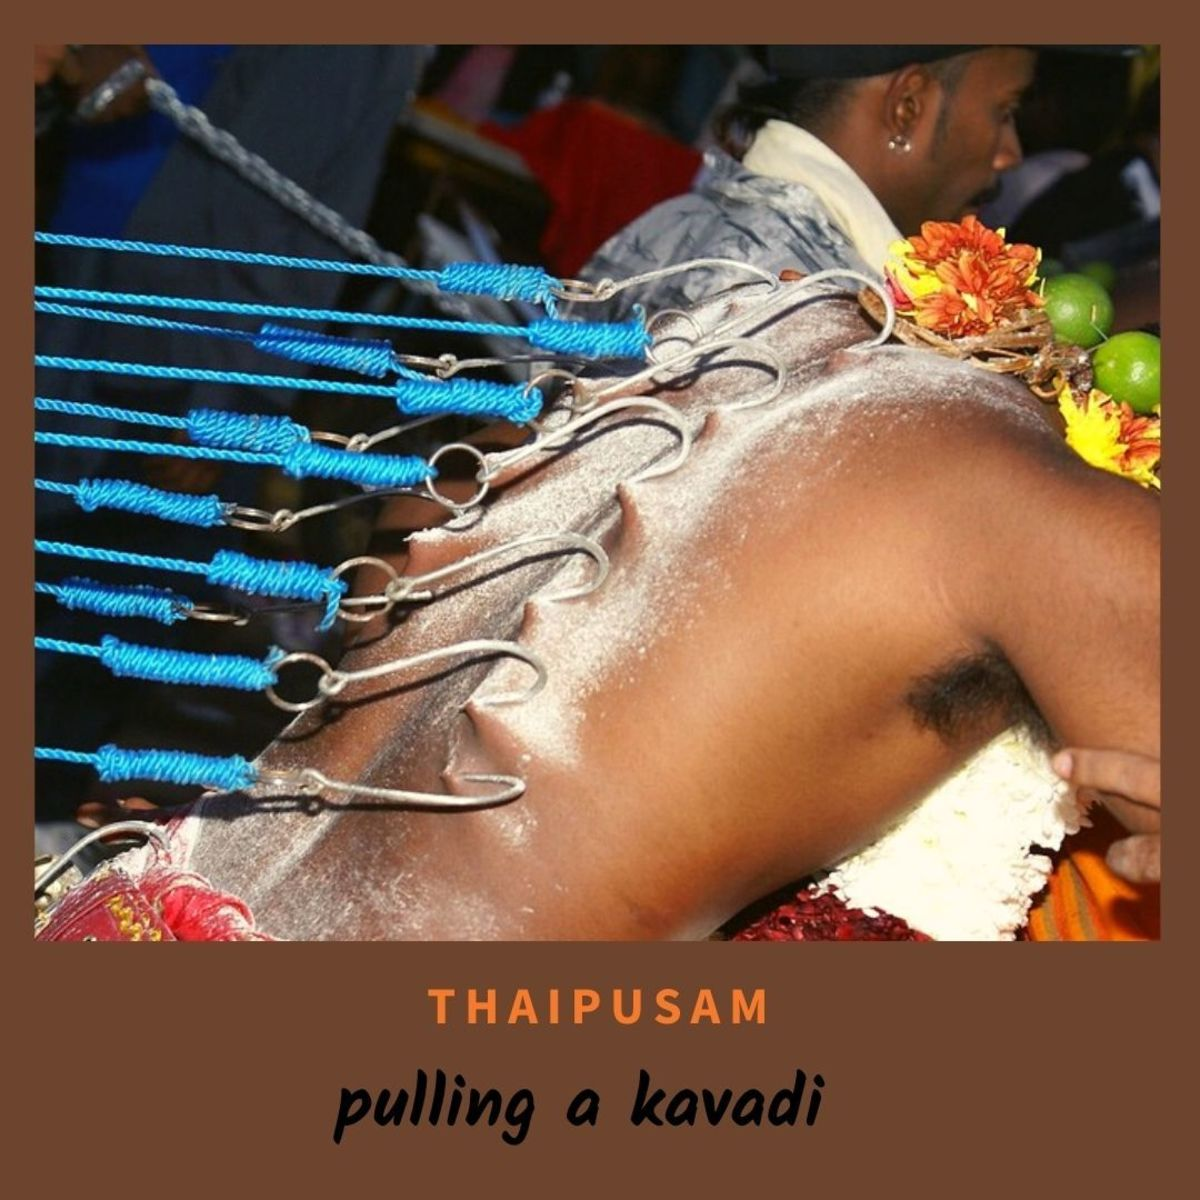 A devotee who has taken his vow for the Thaipusam